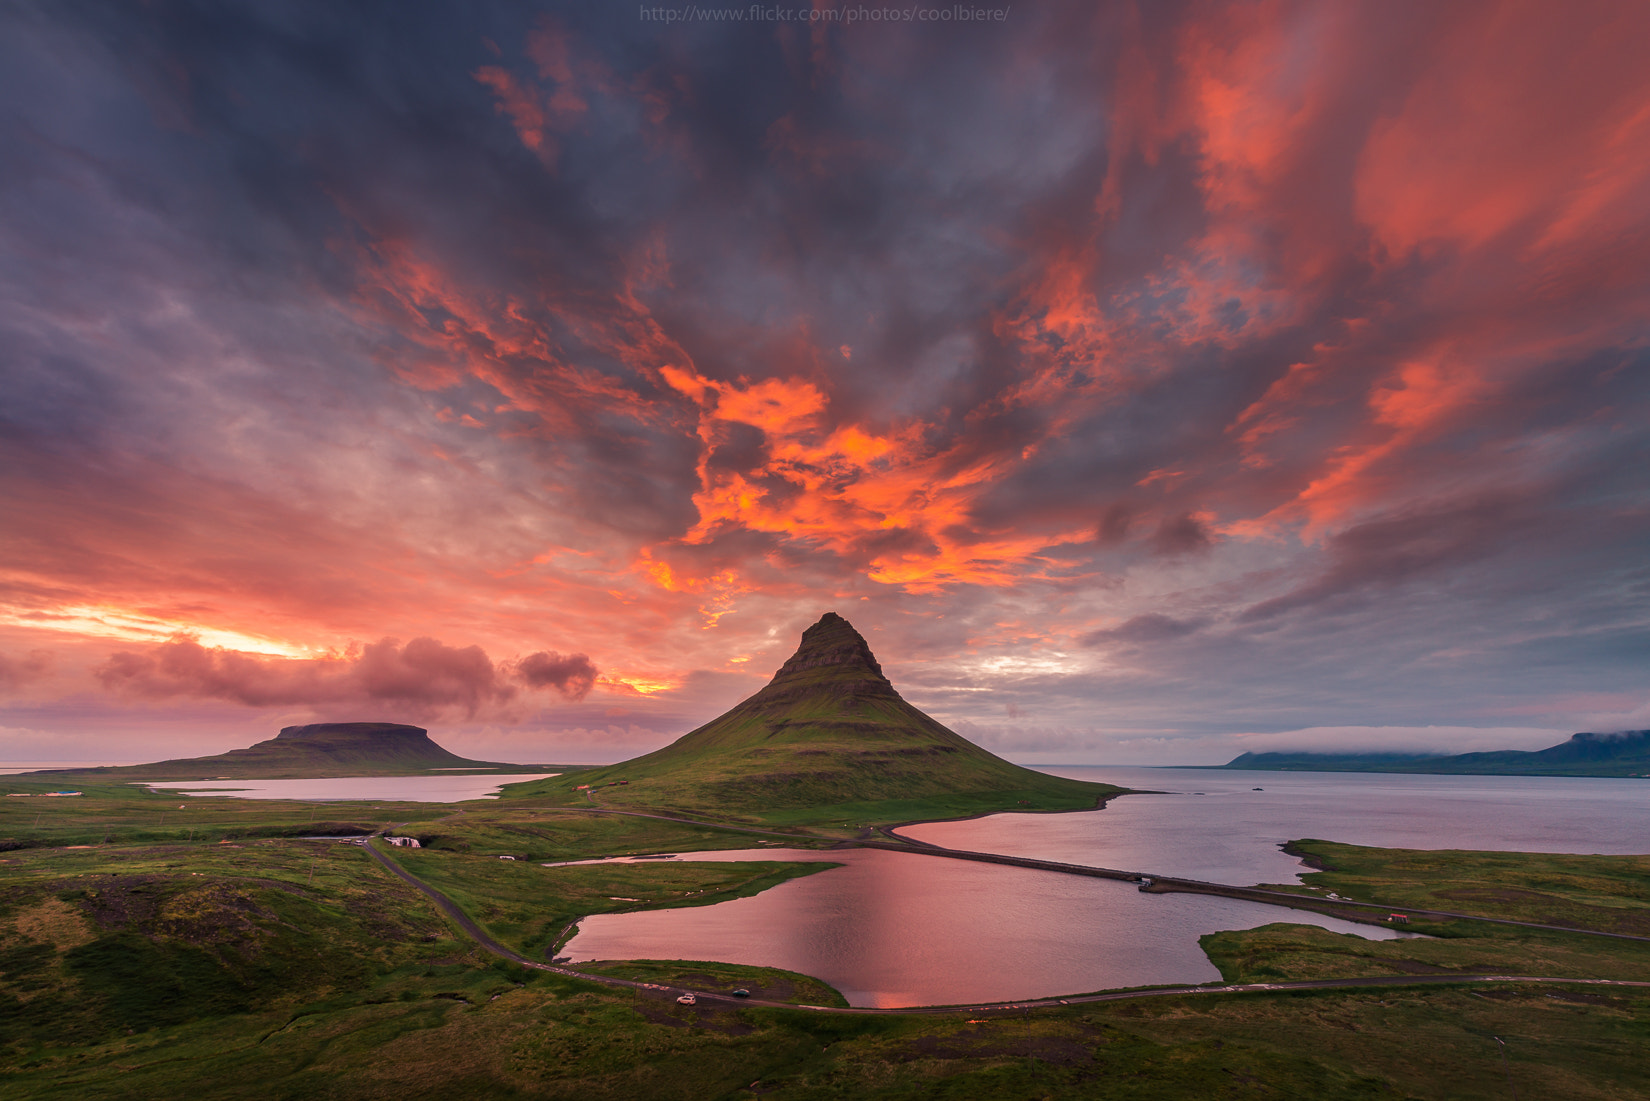 Photograph Kirkjufell Midnight sun by Coolbiere. A. on 500px